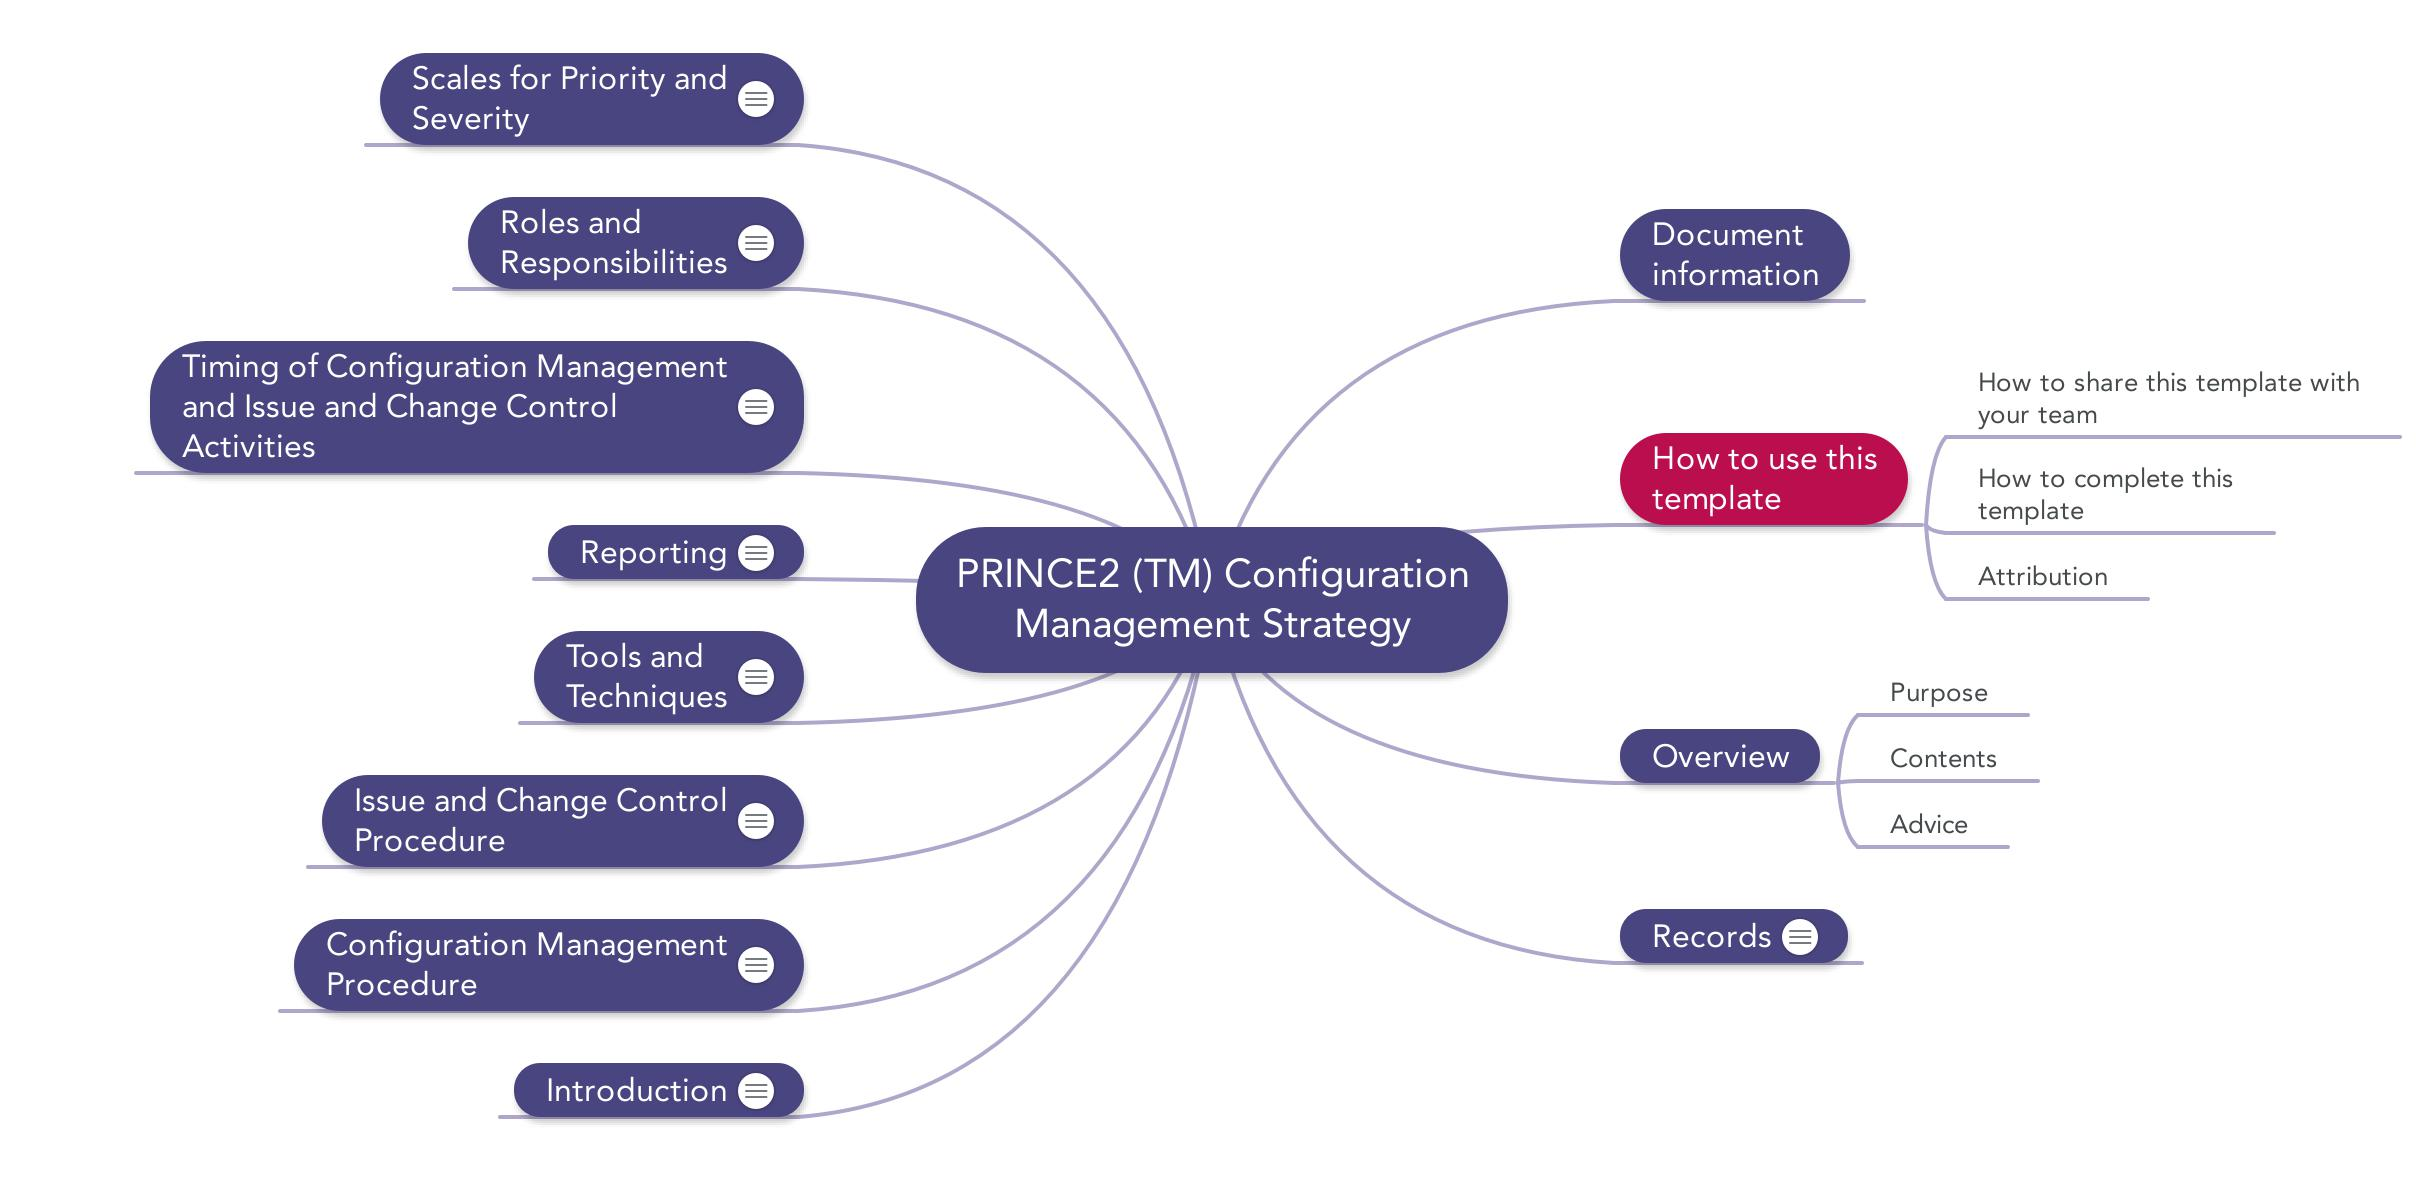 Prince2 Communication Management Strategy | Download template